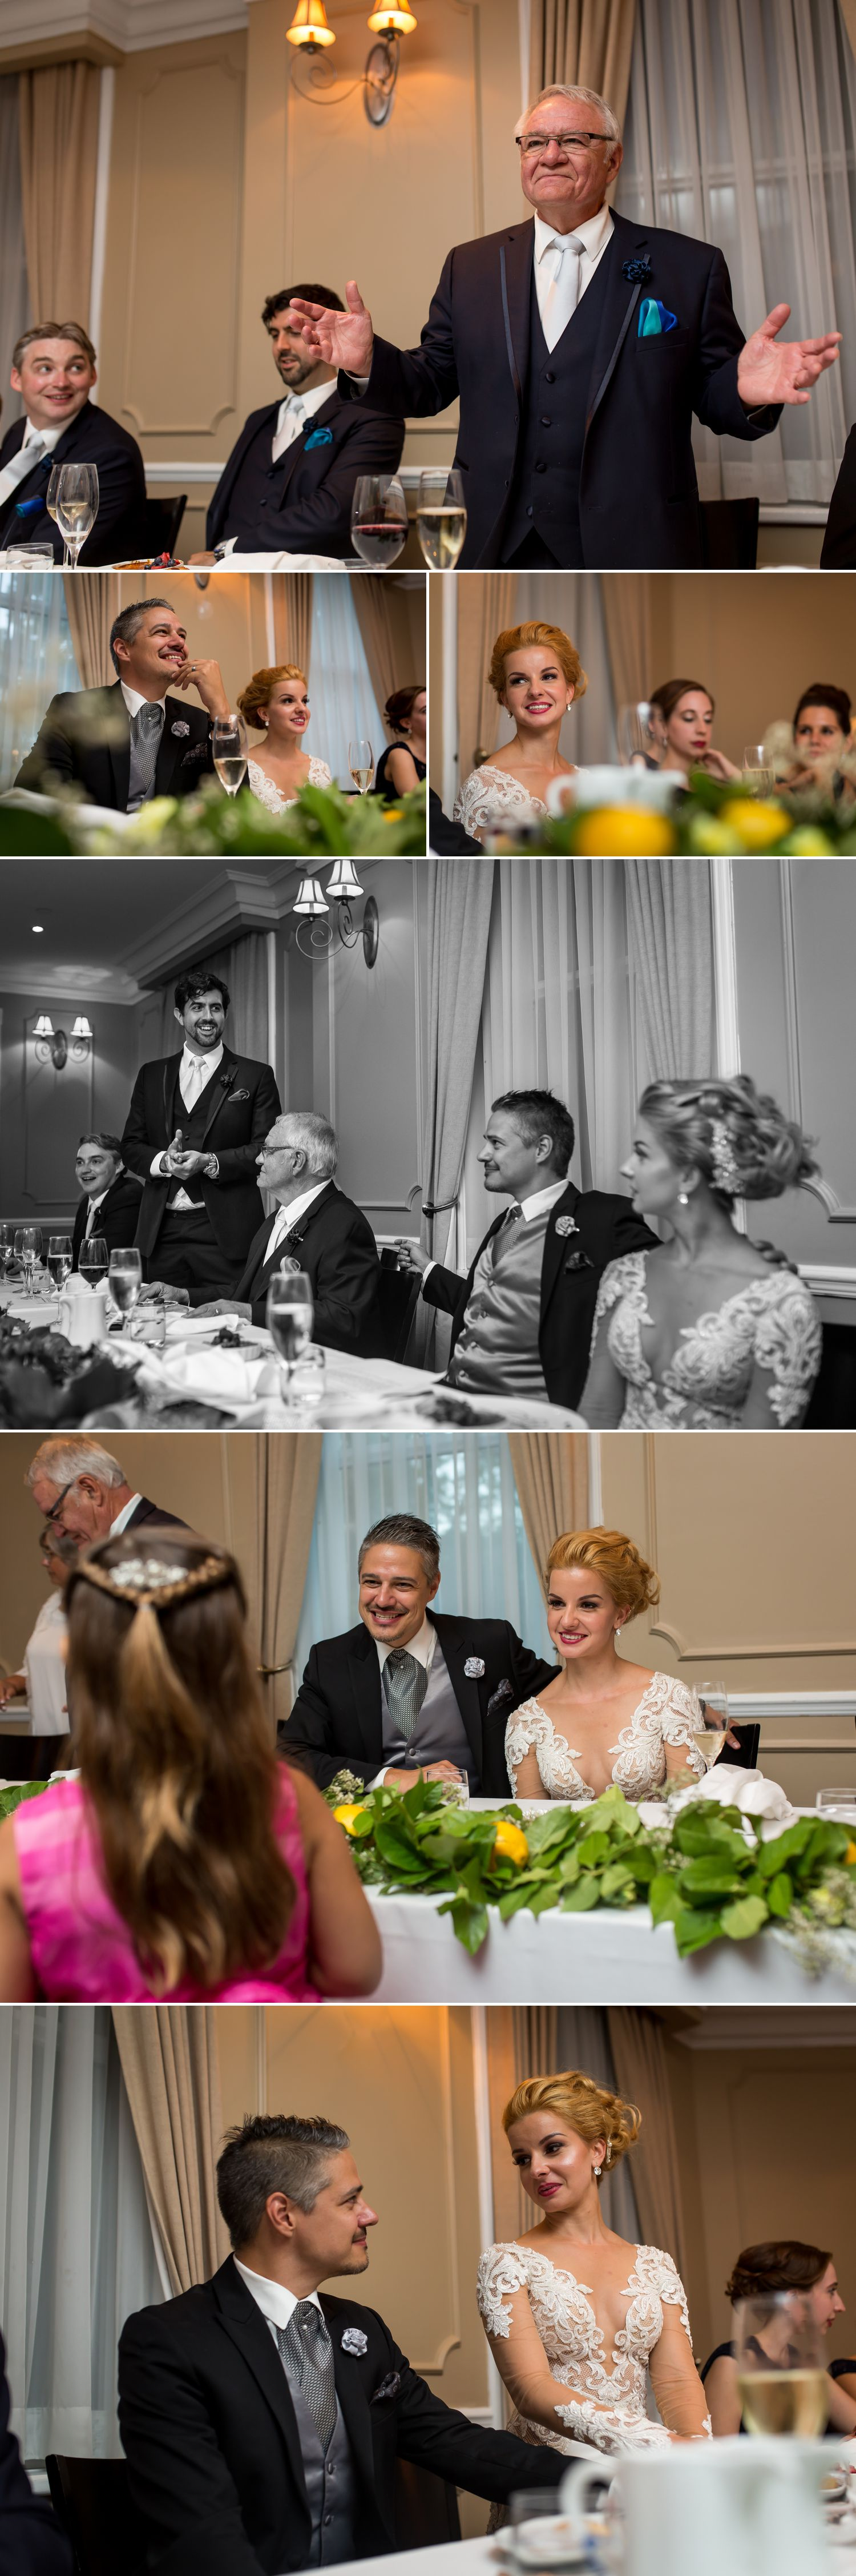 The bride and groom during speeches during their wedding reception at Le Cordon Bleu